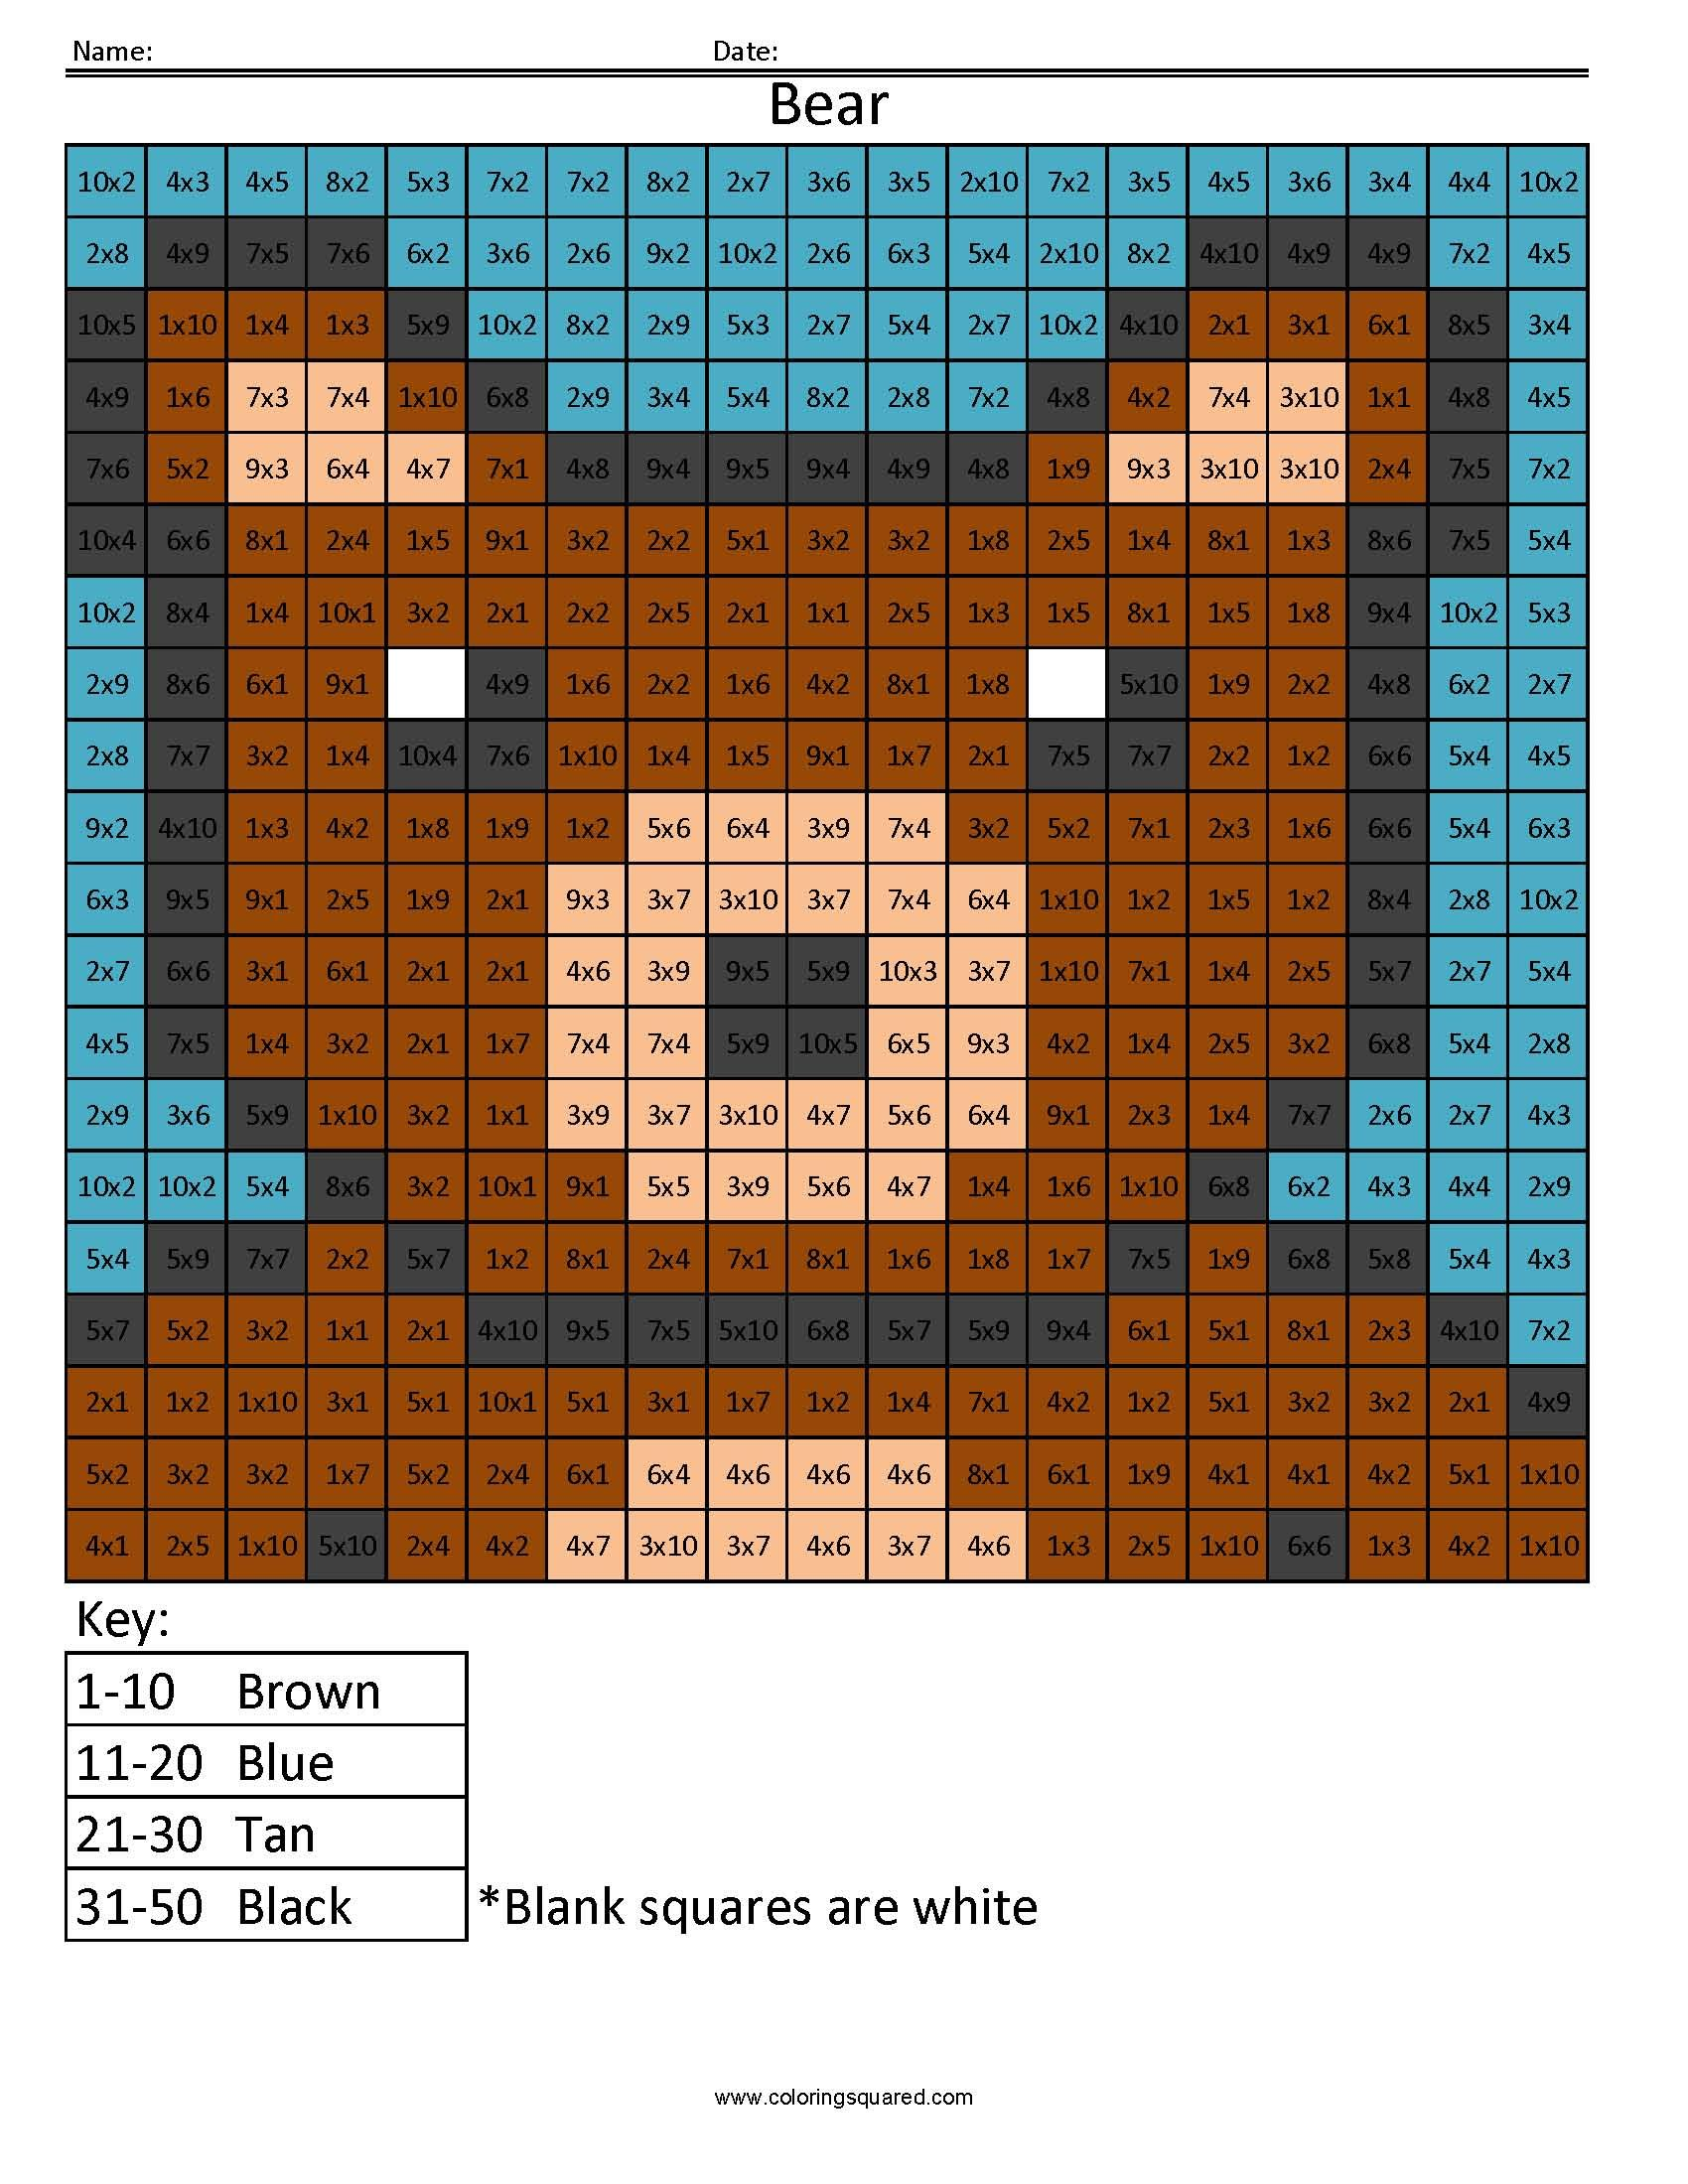 Free coloring page key - Free Math Coloring Page Me4 Bear Color Jpg 1 700